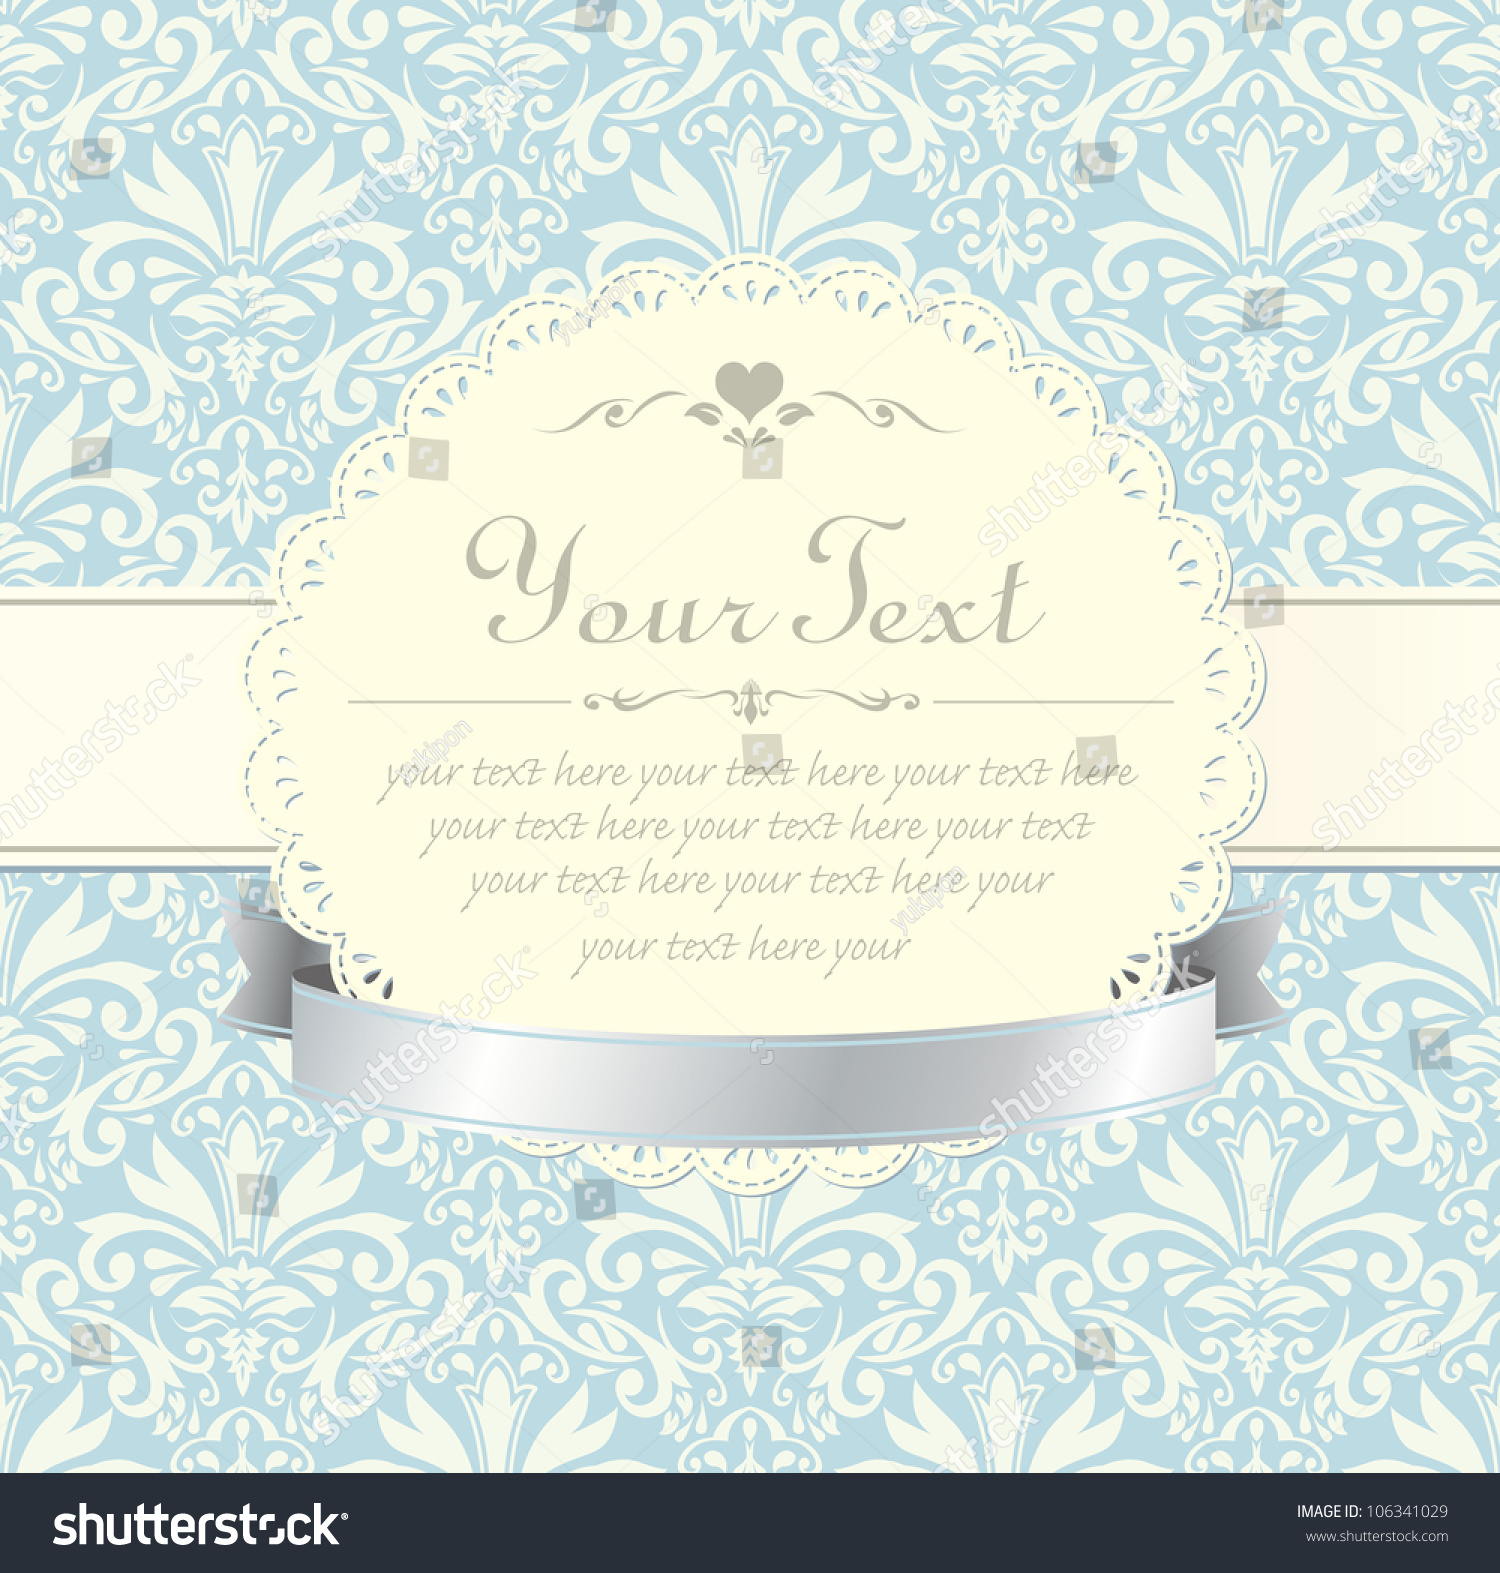 Blue vintage label vector frame stock vector 106341029 shutterstock blue vintage label vector frame stopboris Image collections